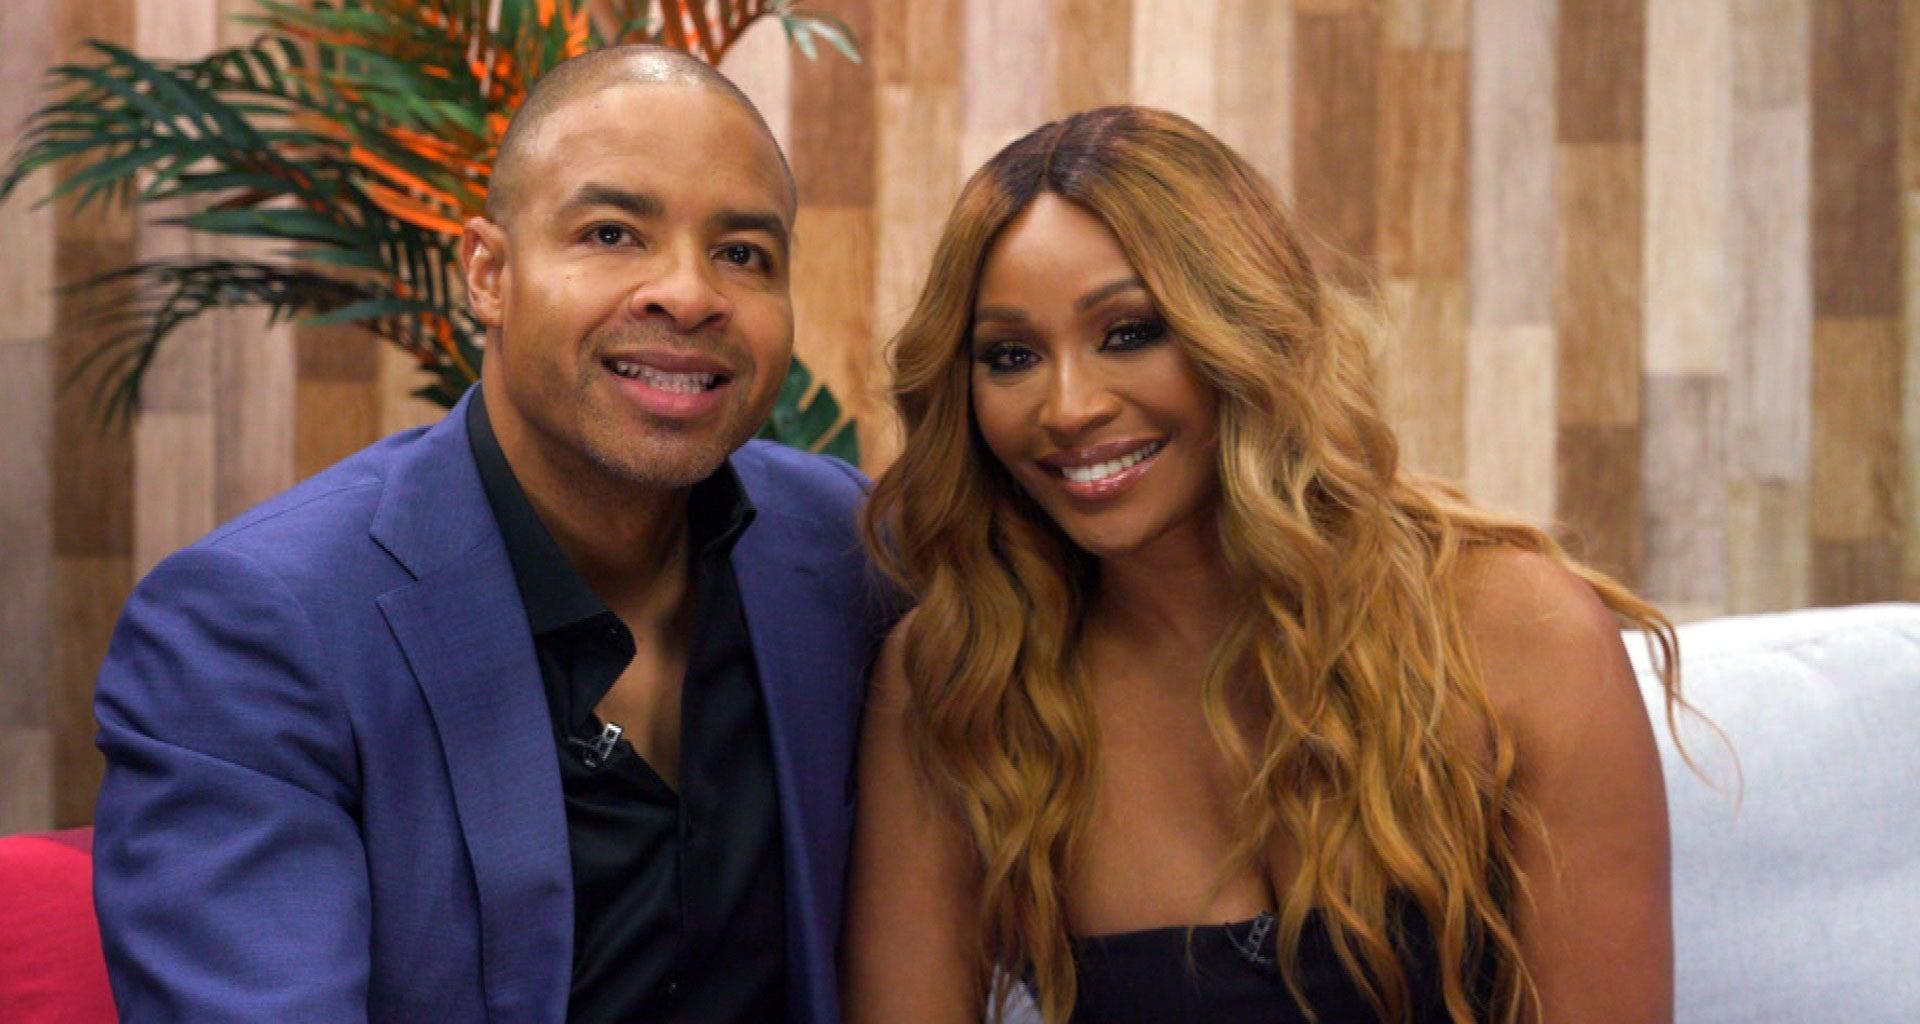 Cynthia Bailey's Fiance And Sports Commentator Mike Hill Thought Drew Brees's Comments Were Insensitive